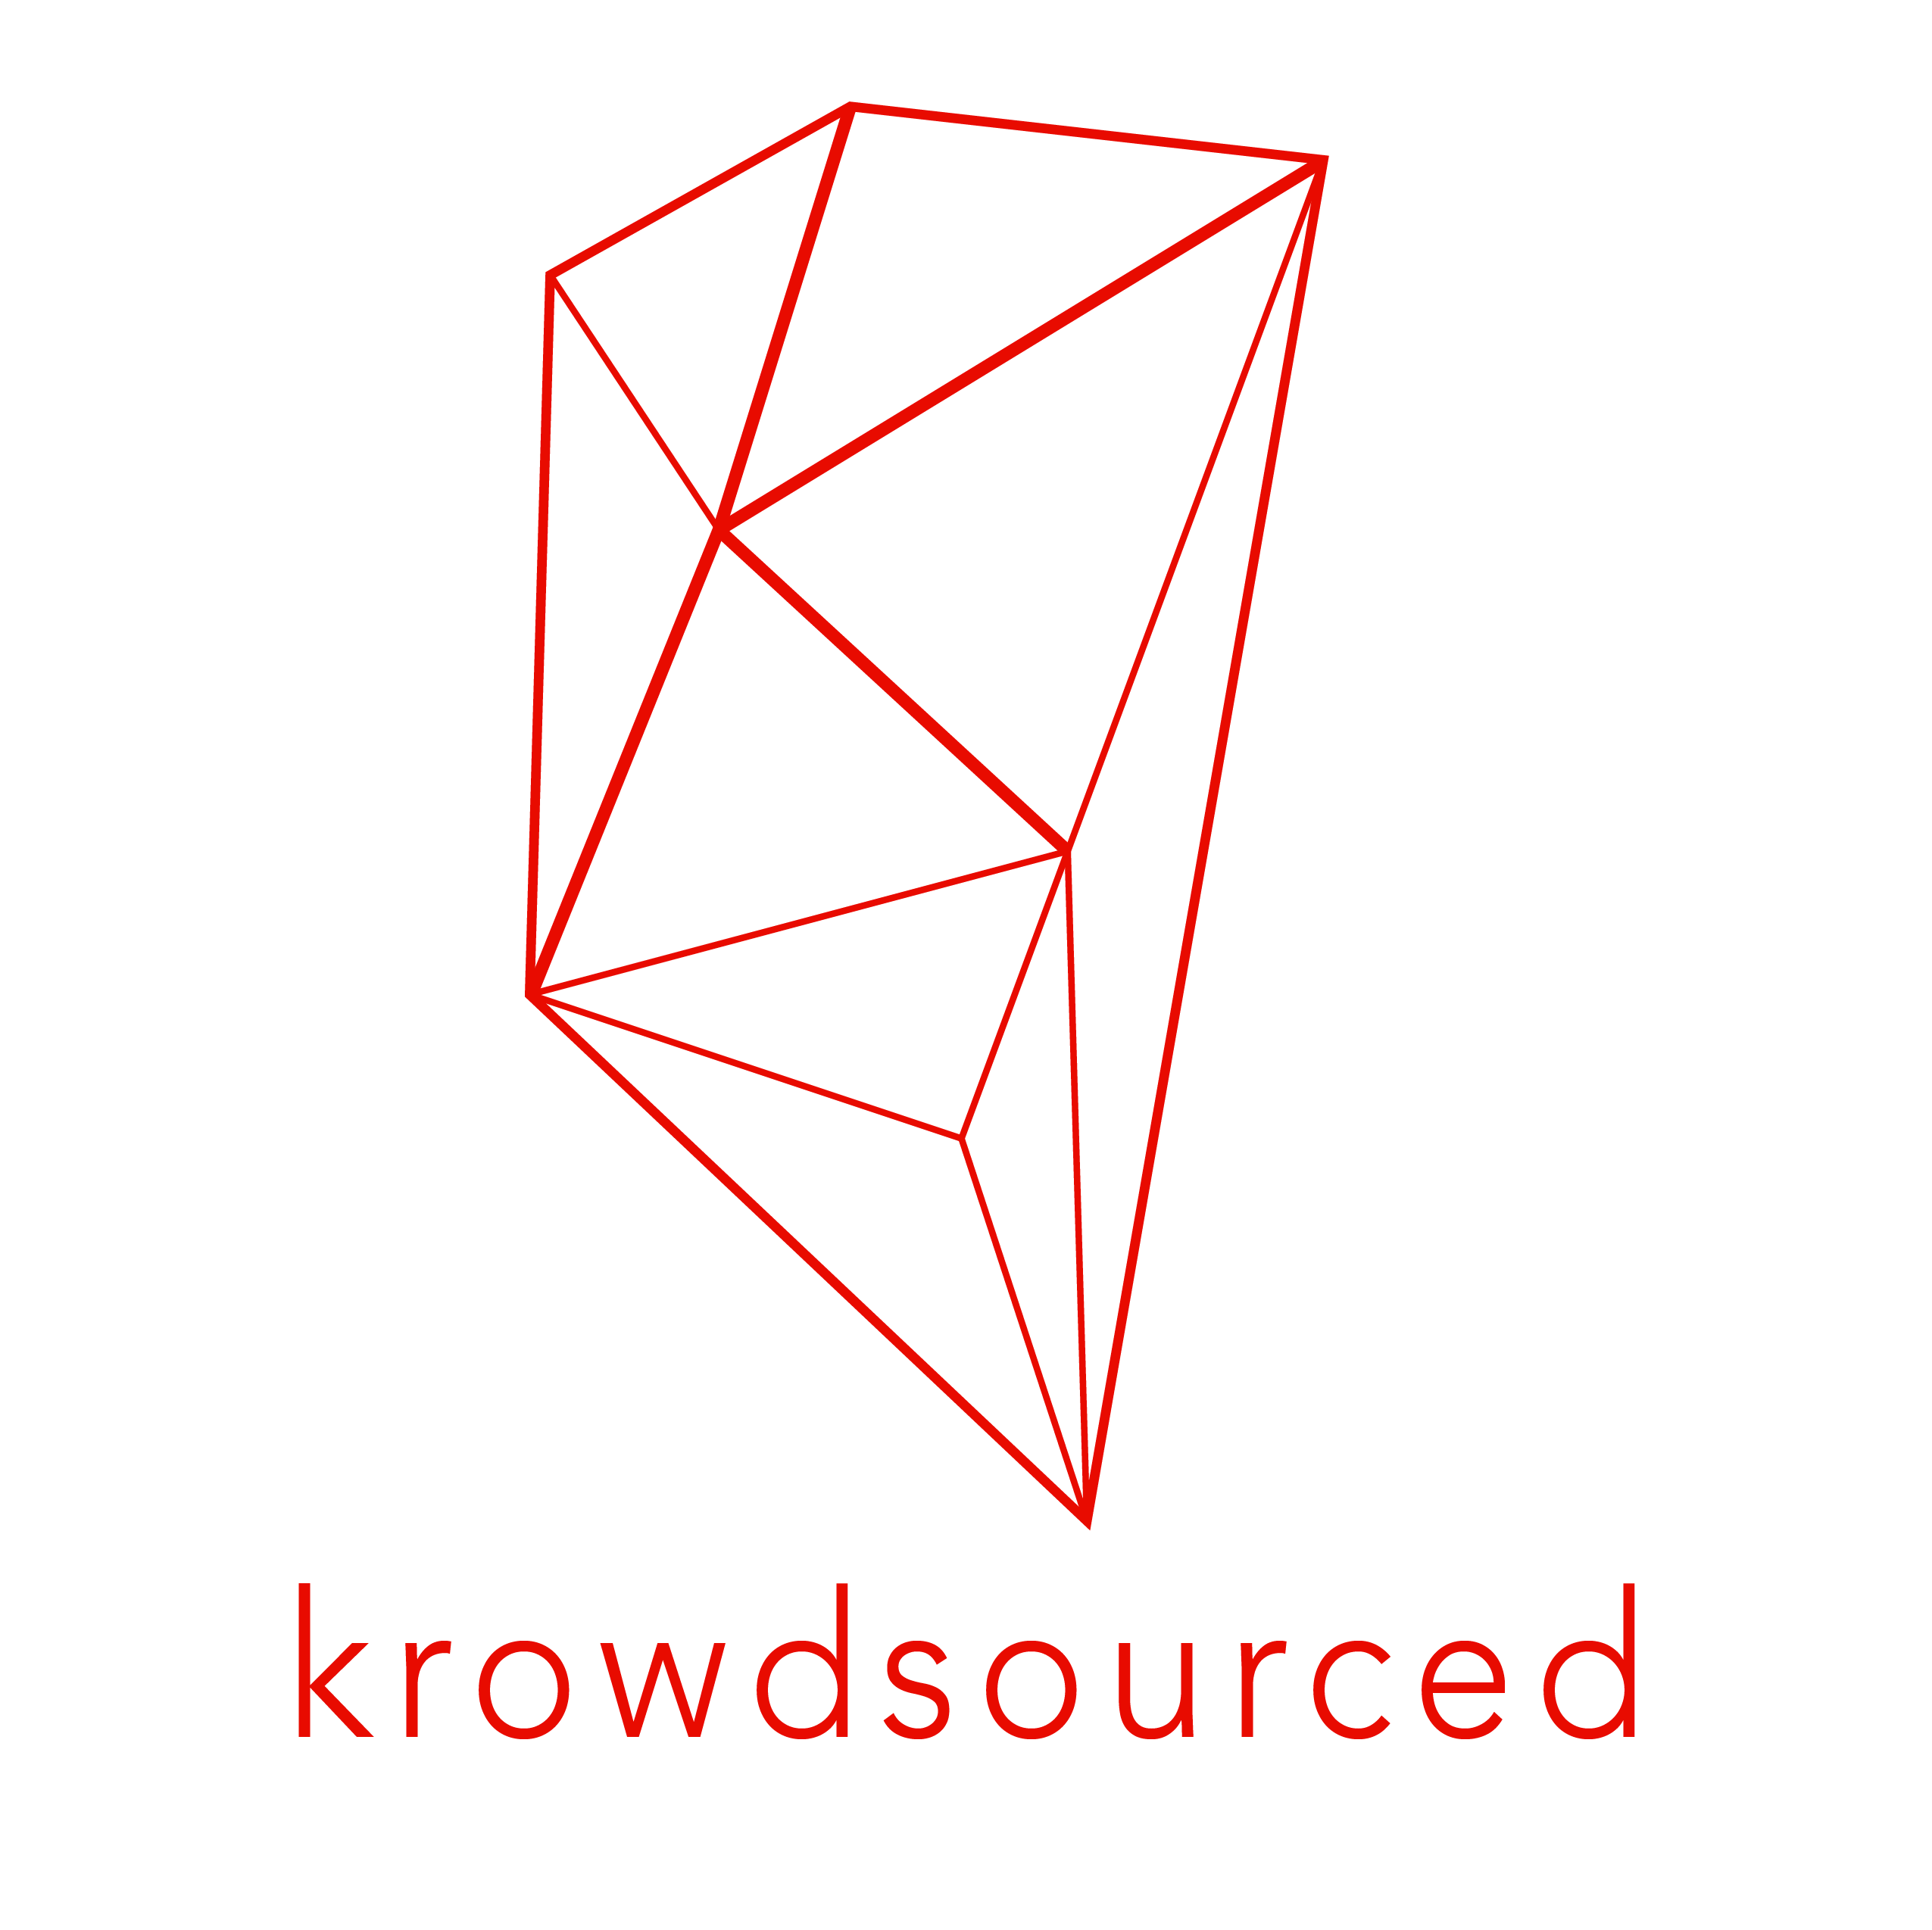 krowdsourced-logo-red-02.png